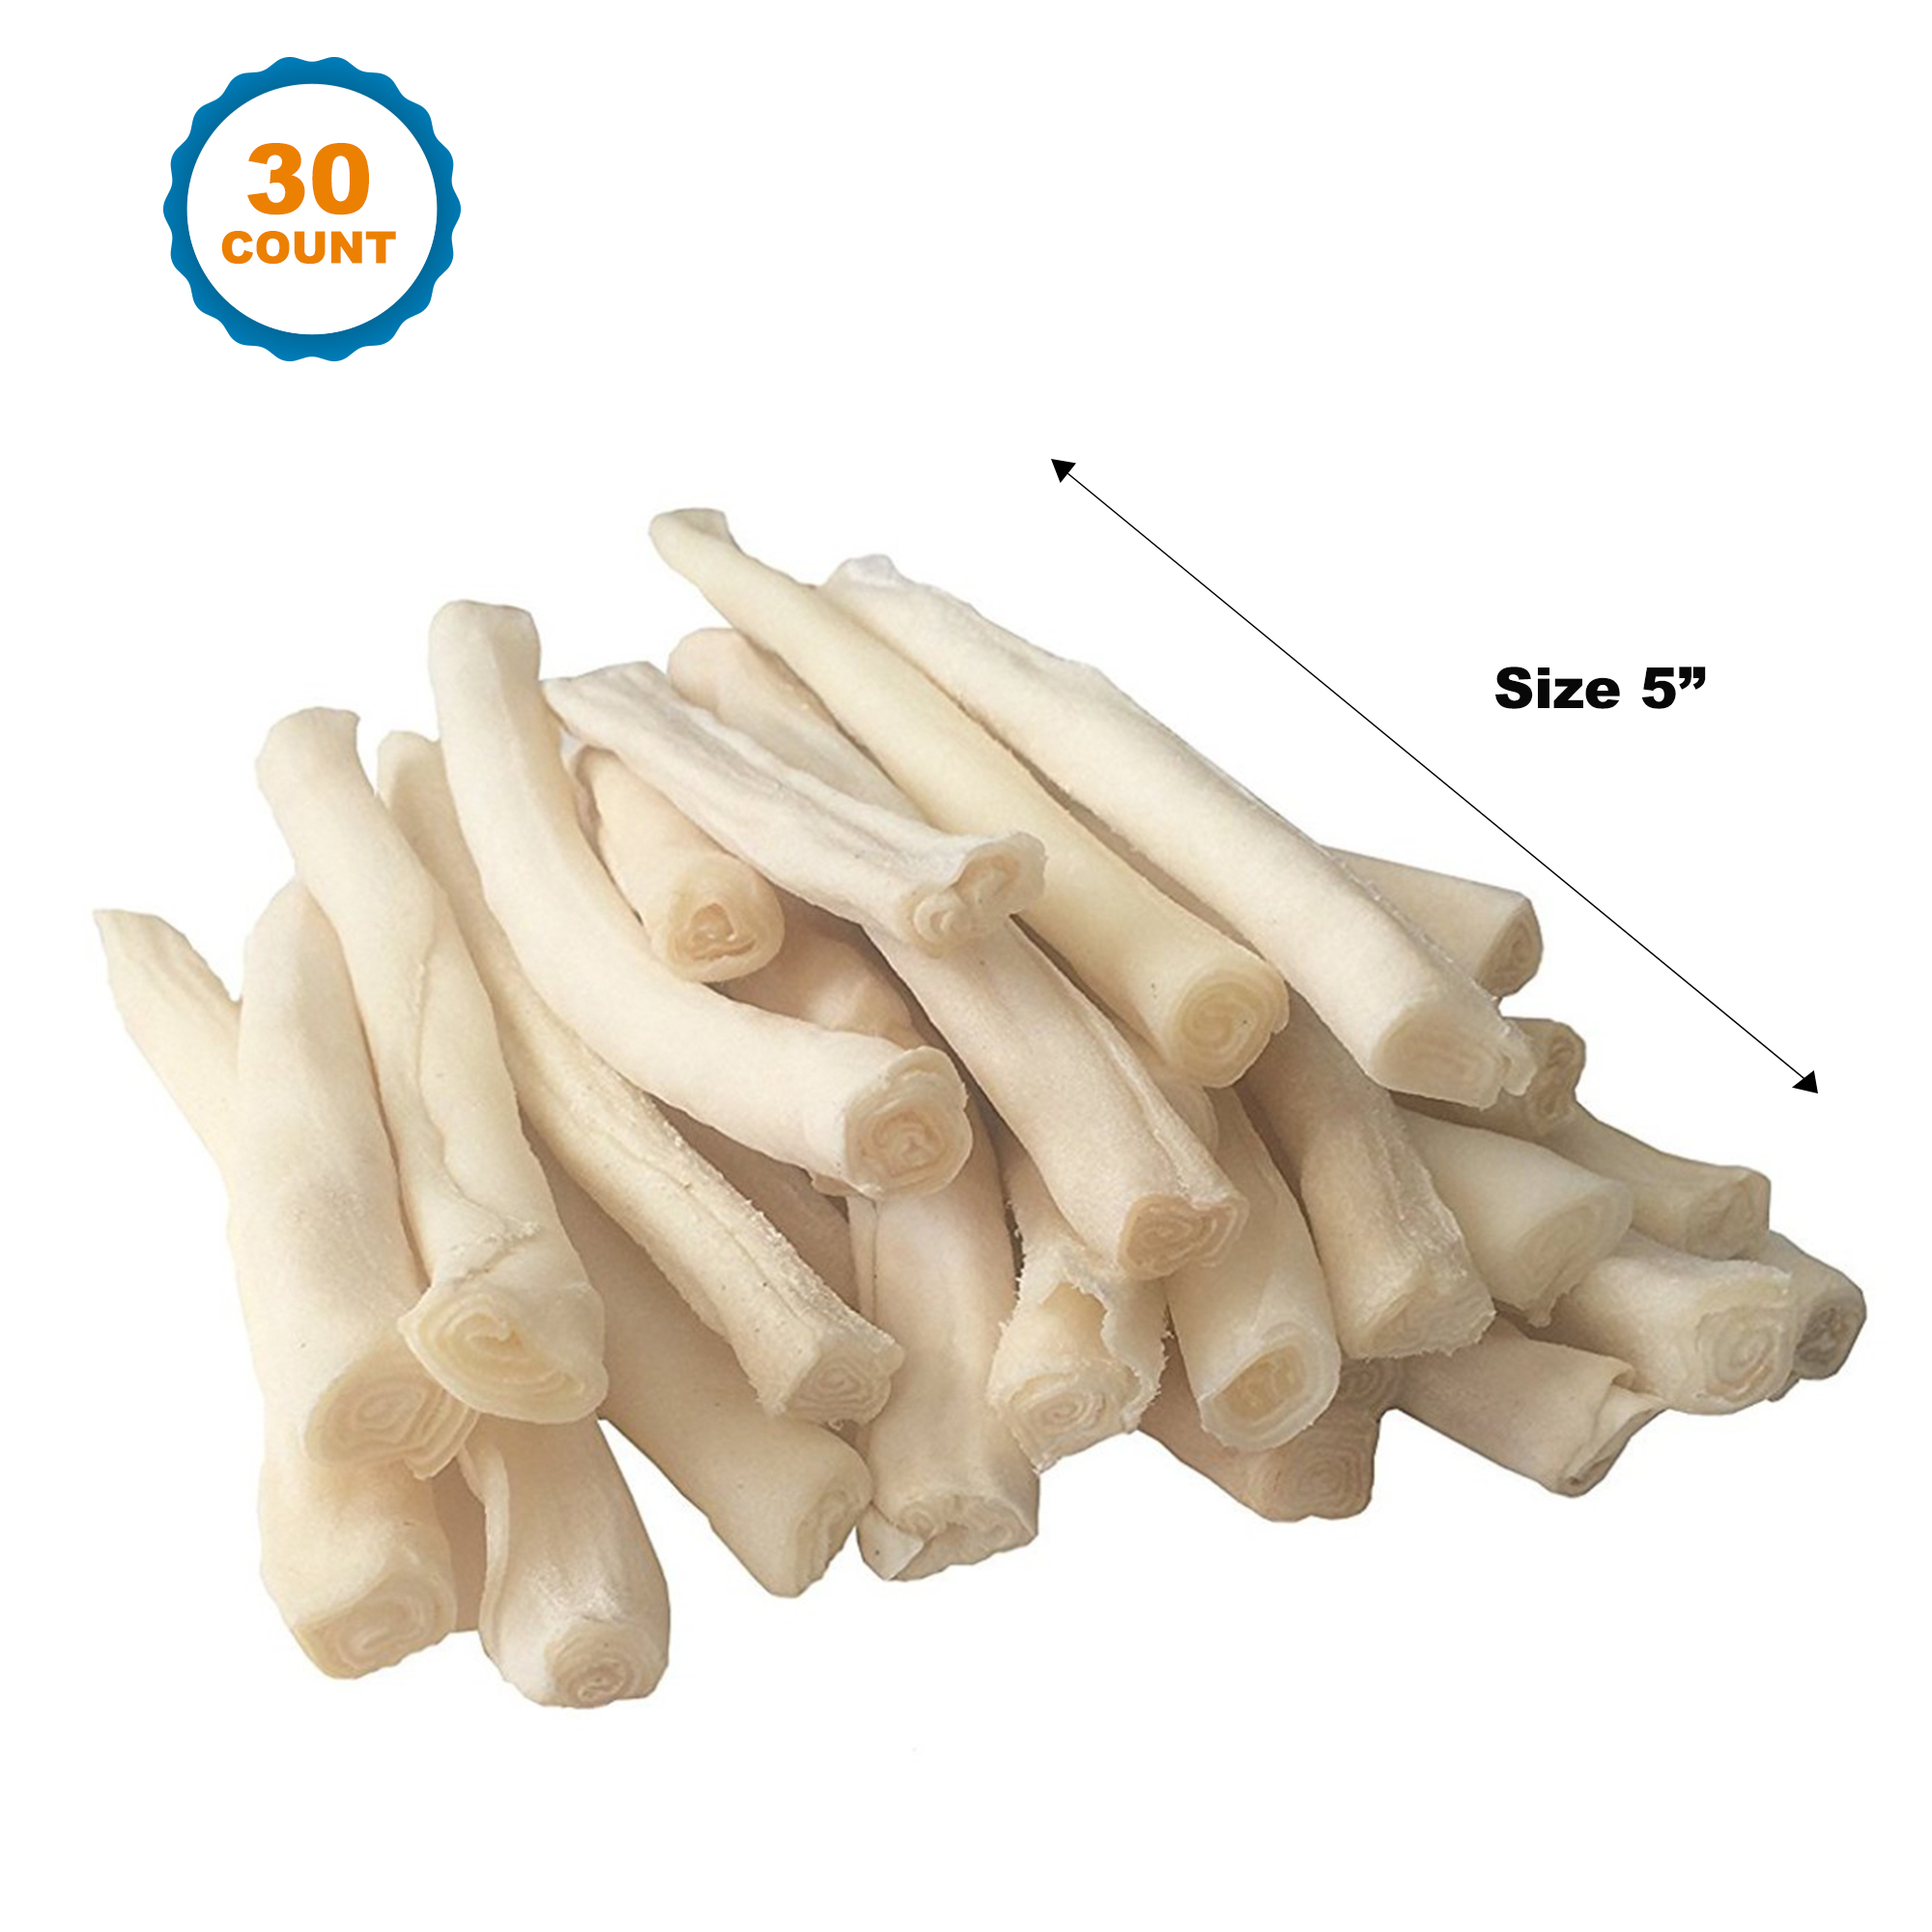 Rawhide Natural Skinny Roll Stick For Dogs - 30 Count | 5"